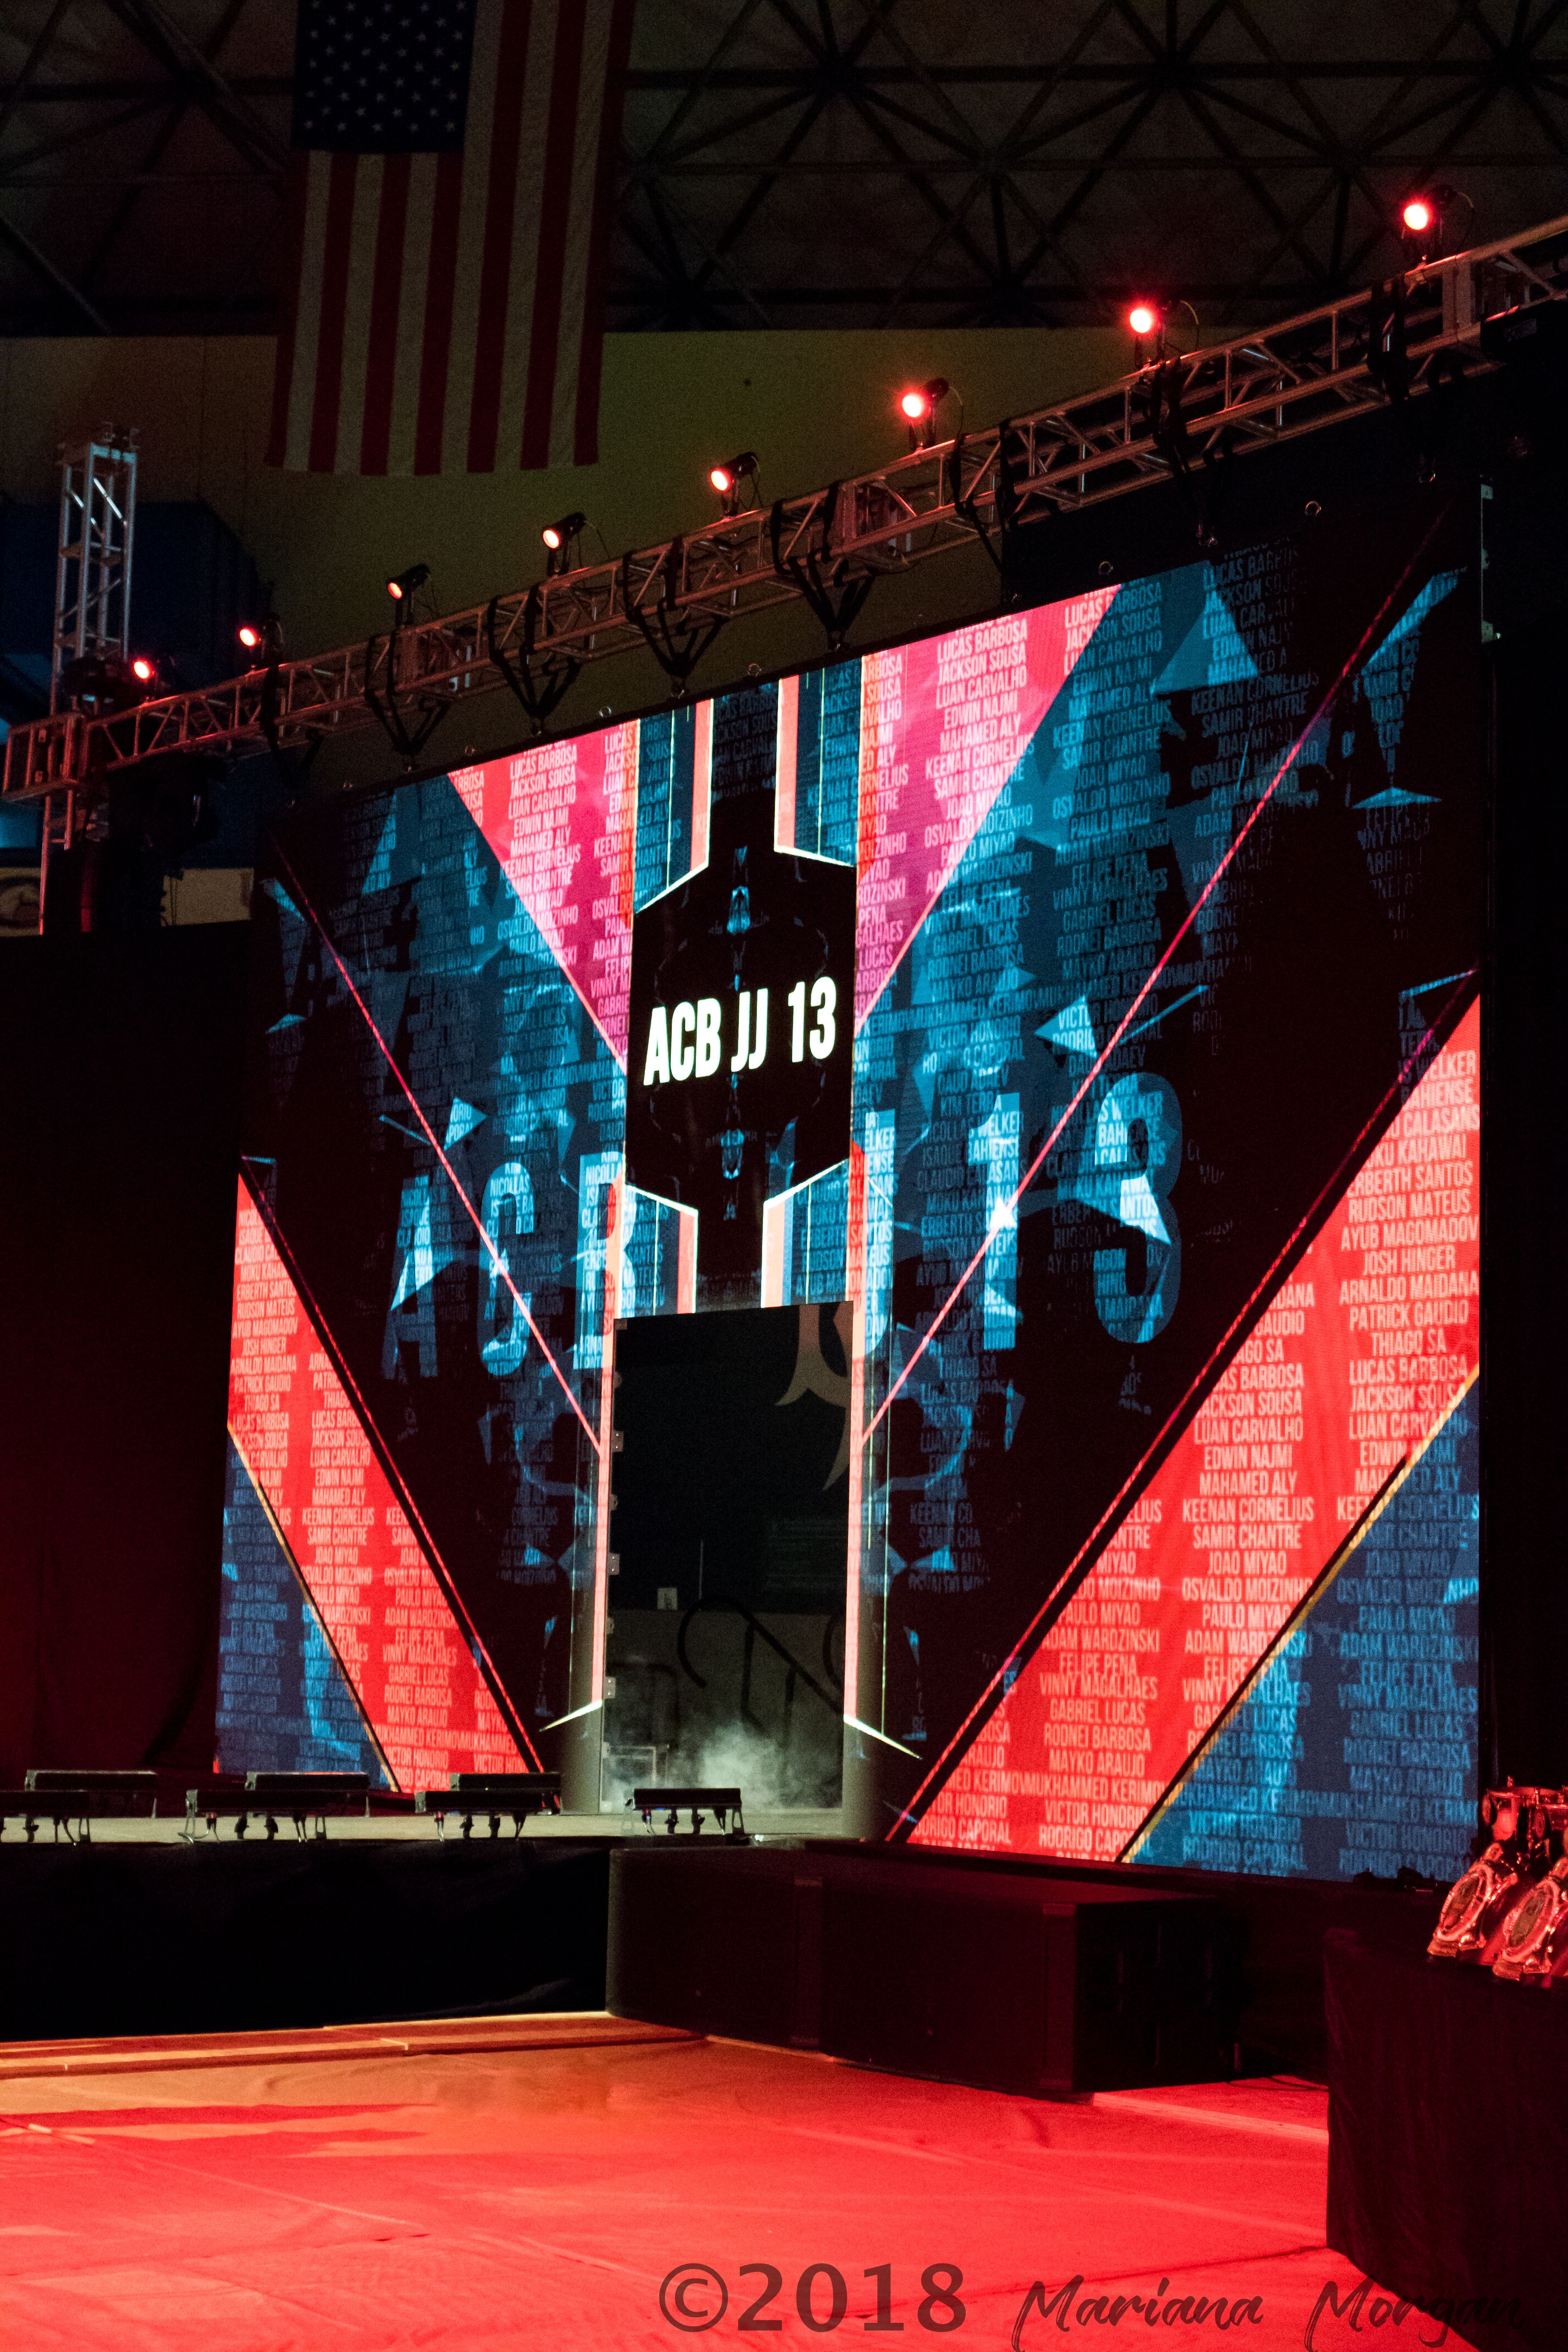 LED Video Wall Display at an Event